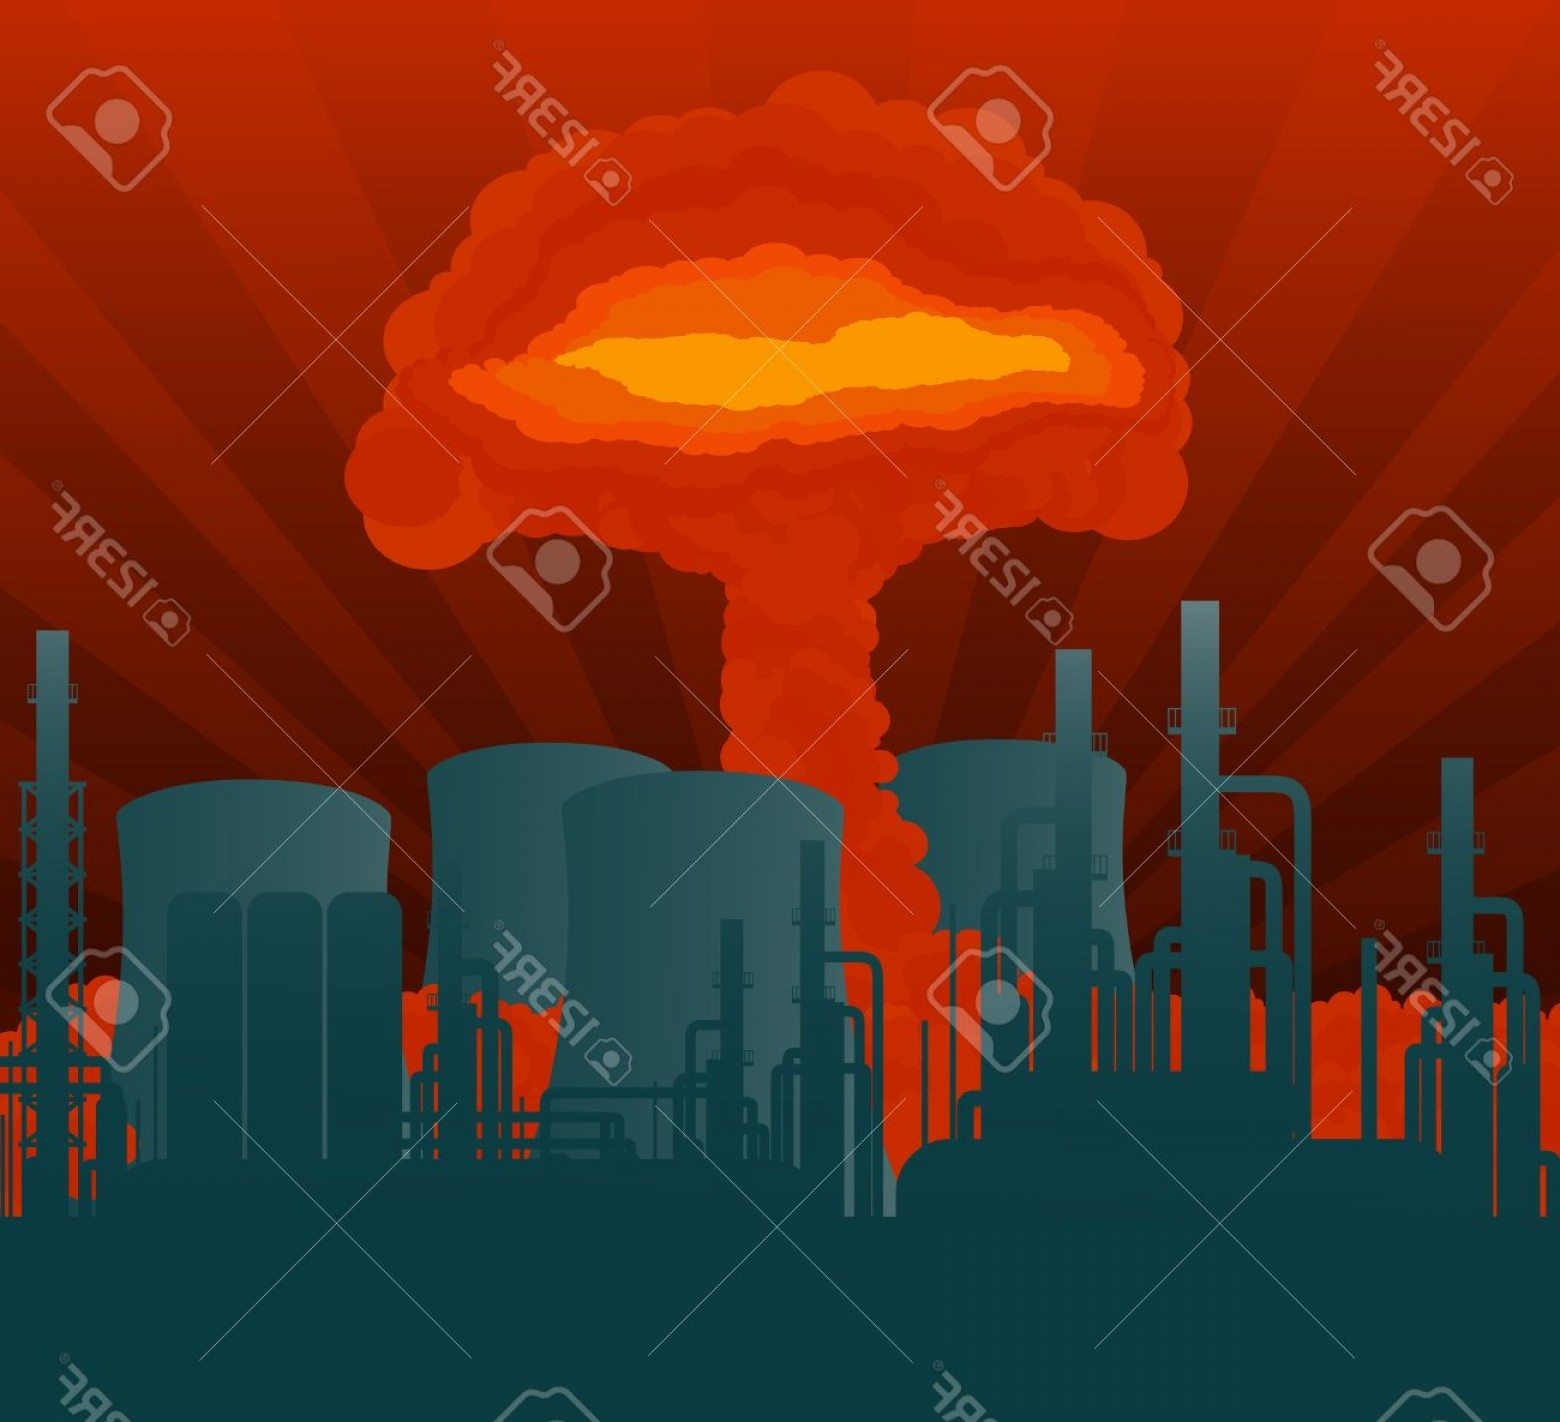 Atomic Vector Coud: Photoatomic Explosion Cloud Formed Mushroom Over Nuclear Power Plant Illustration